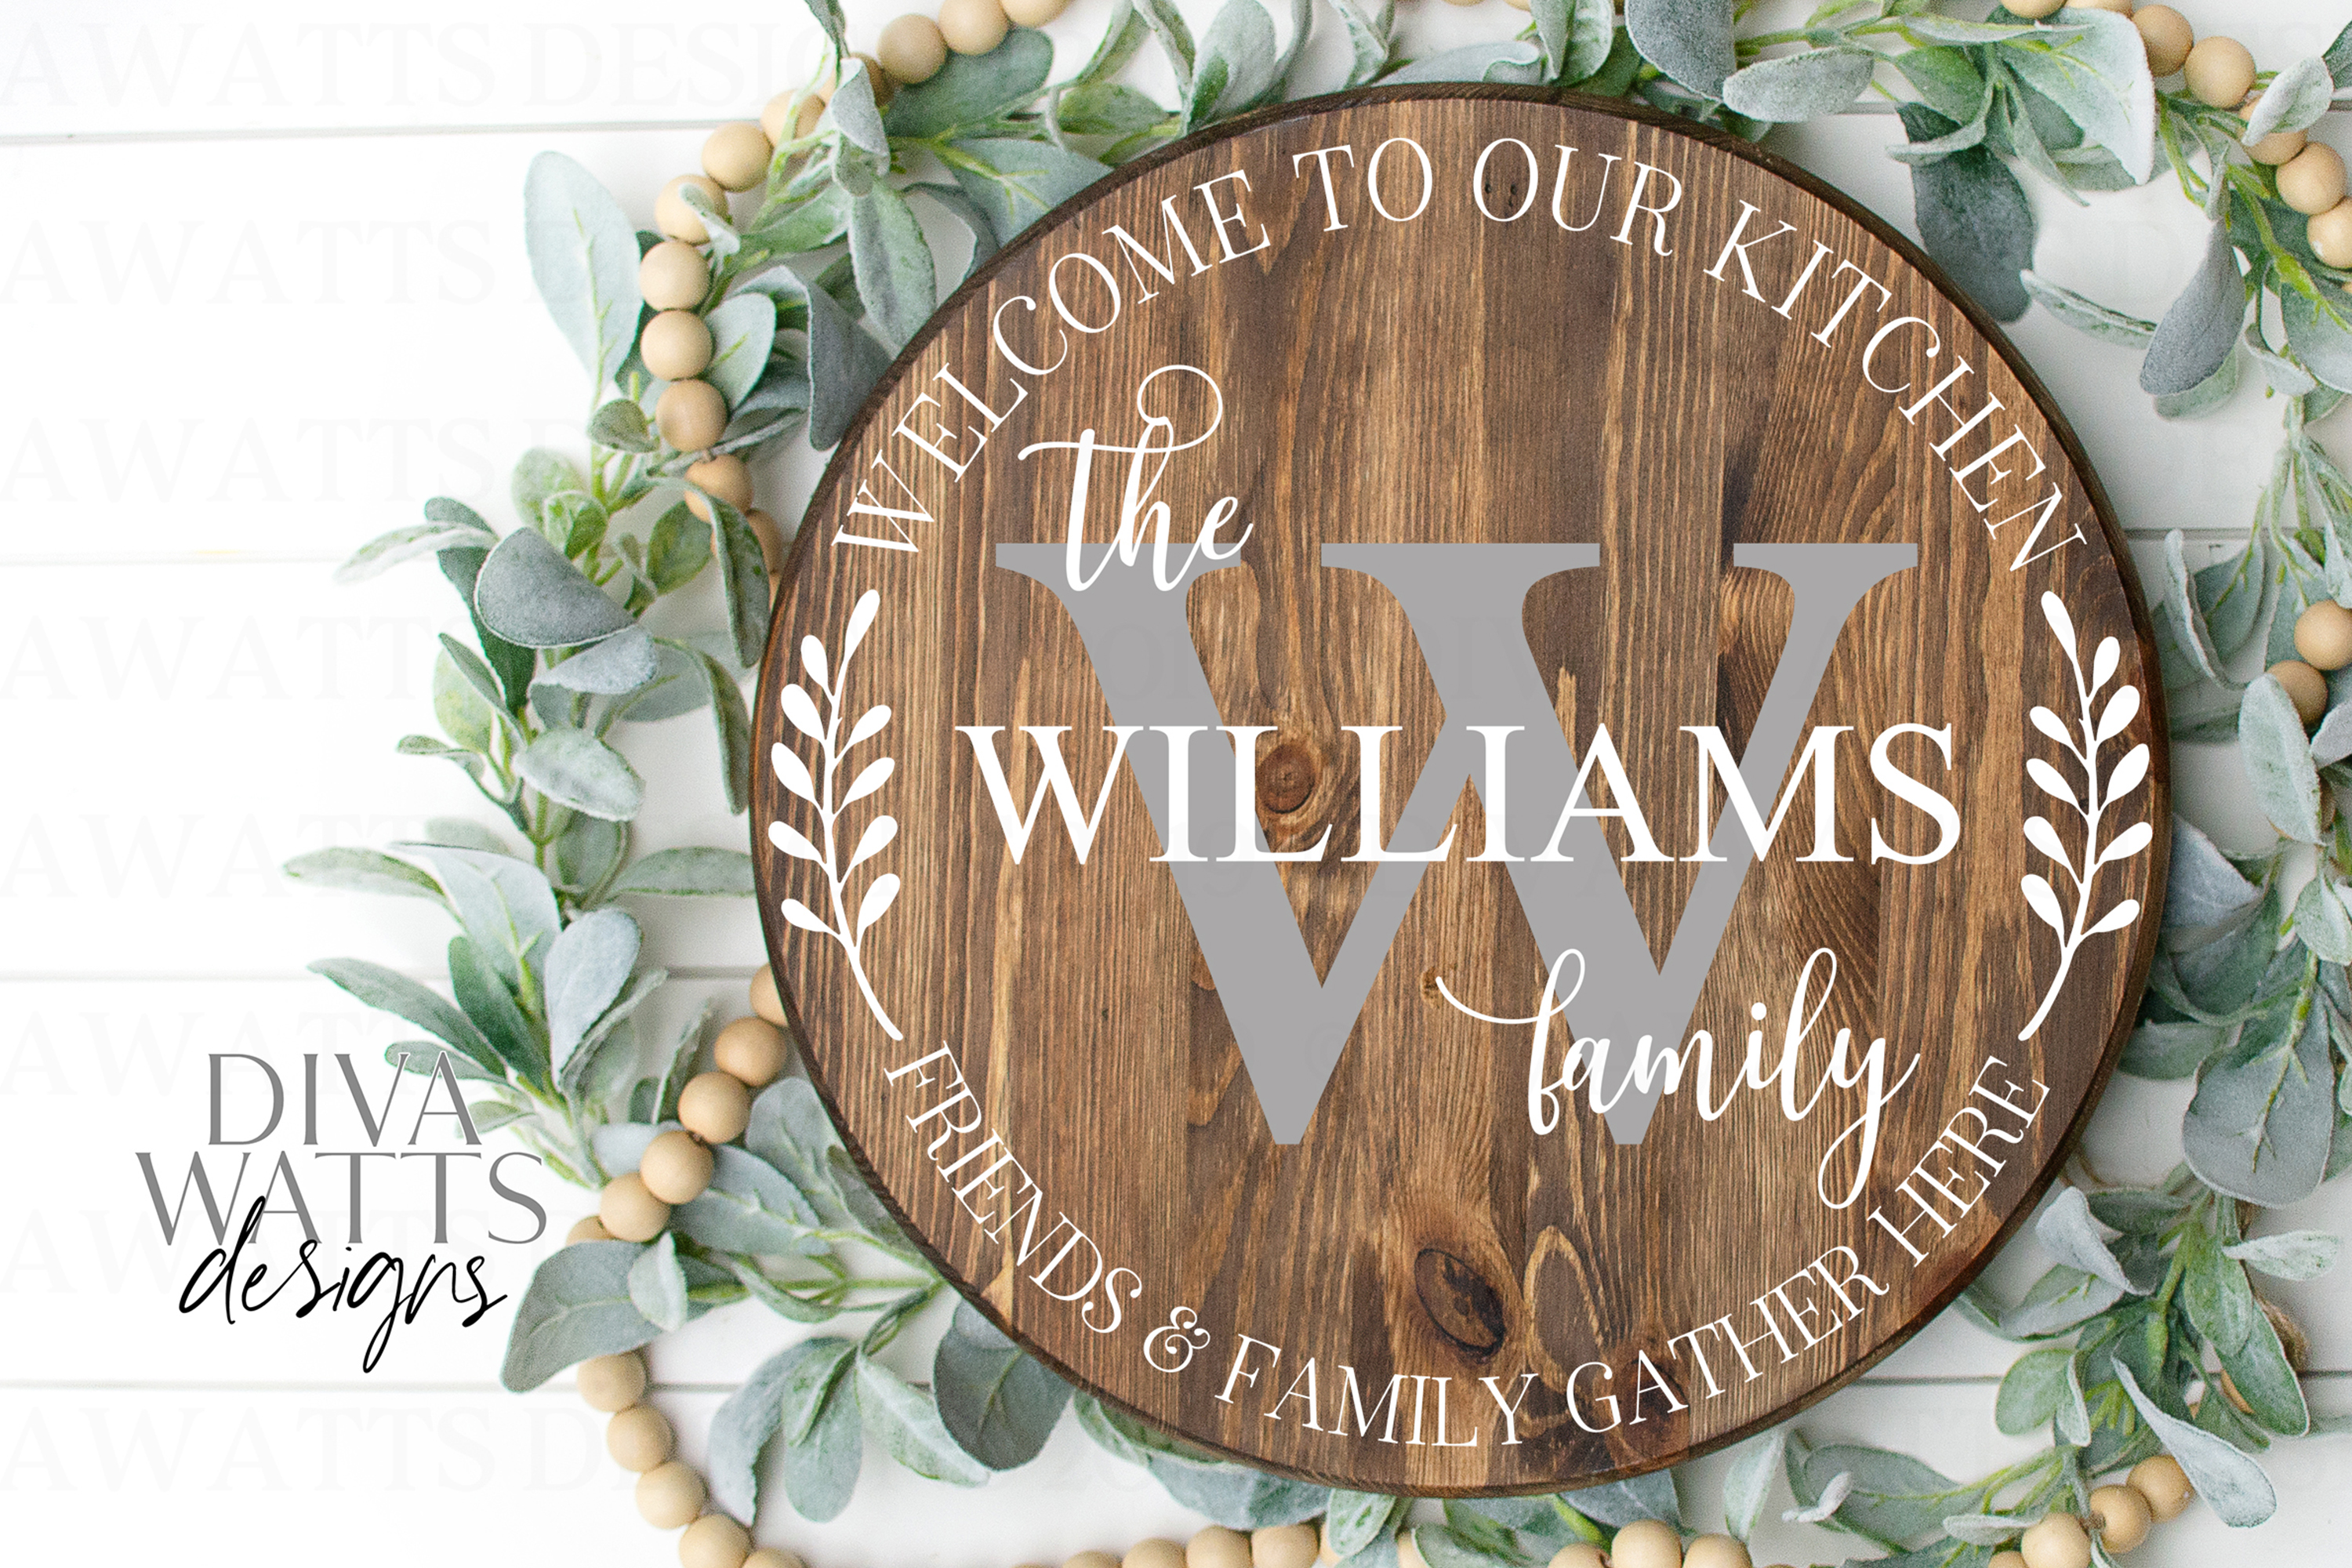 Kitchen Monogram Sign - Friends & Family Gather Here - SVG example image 2